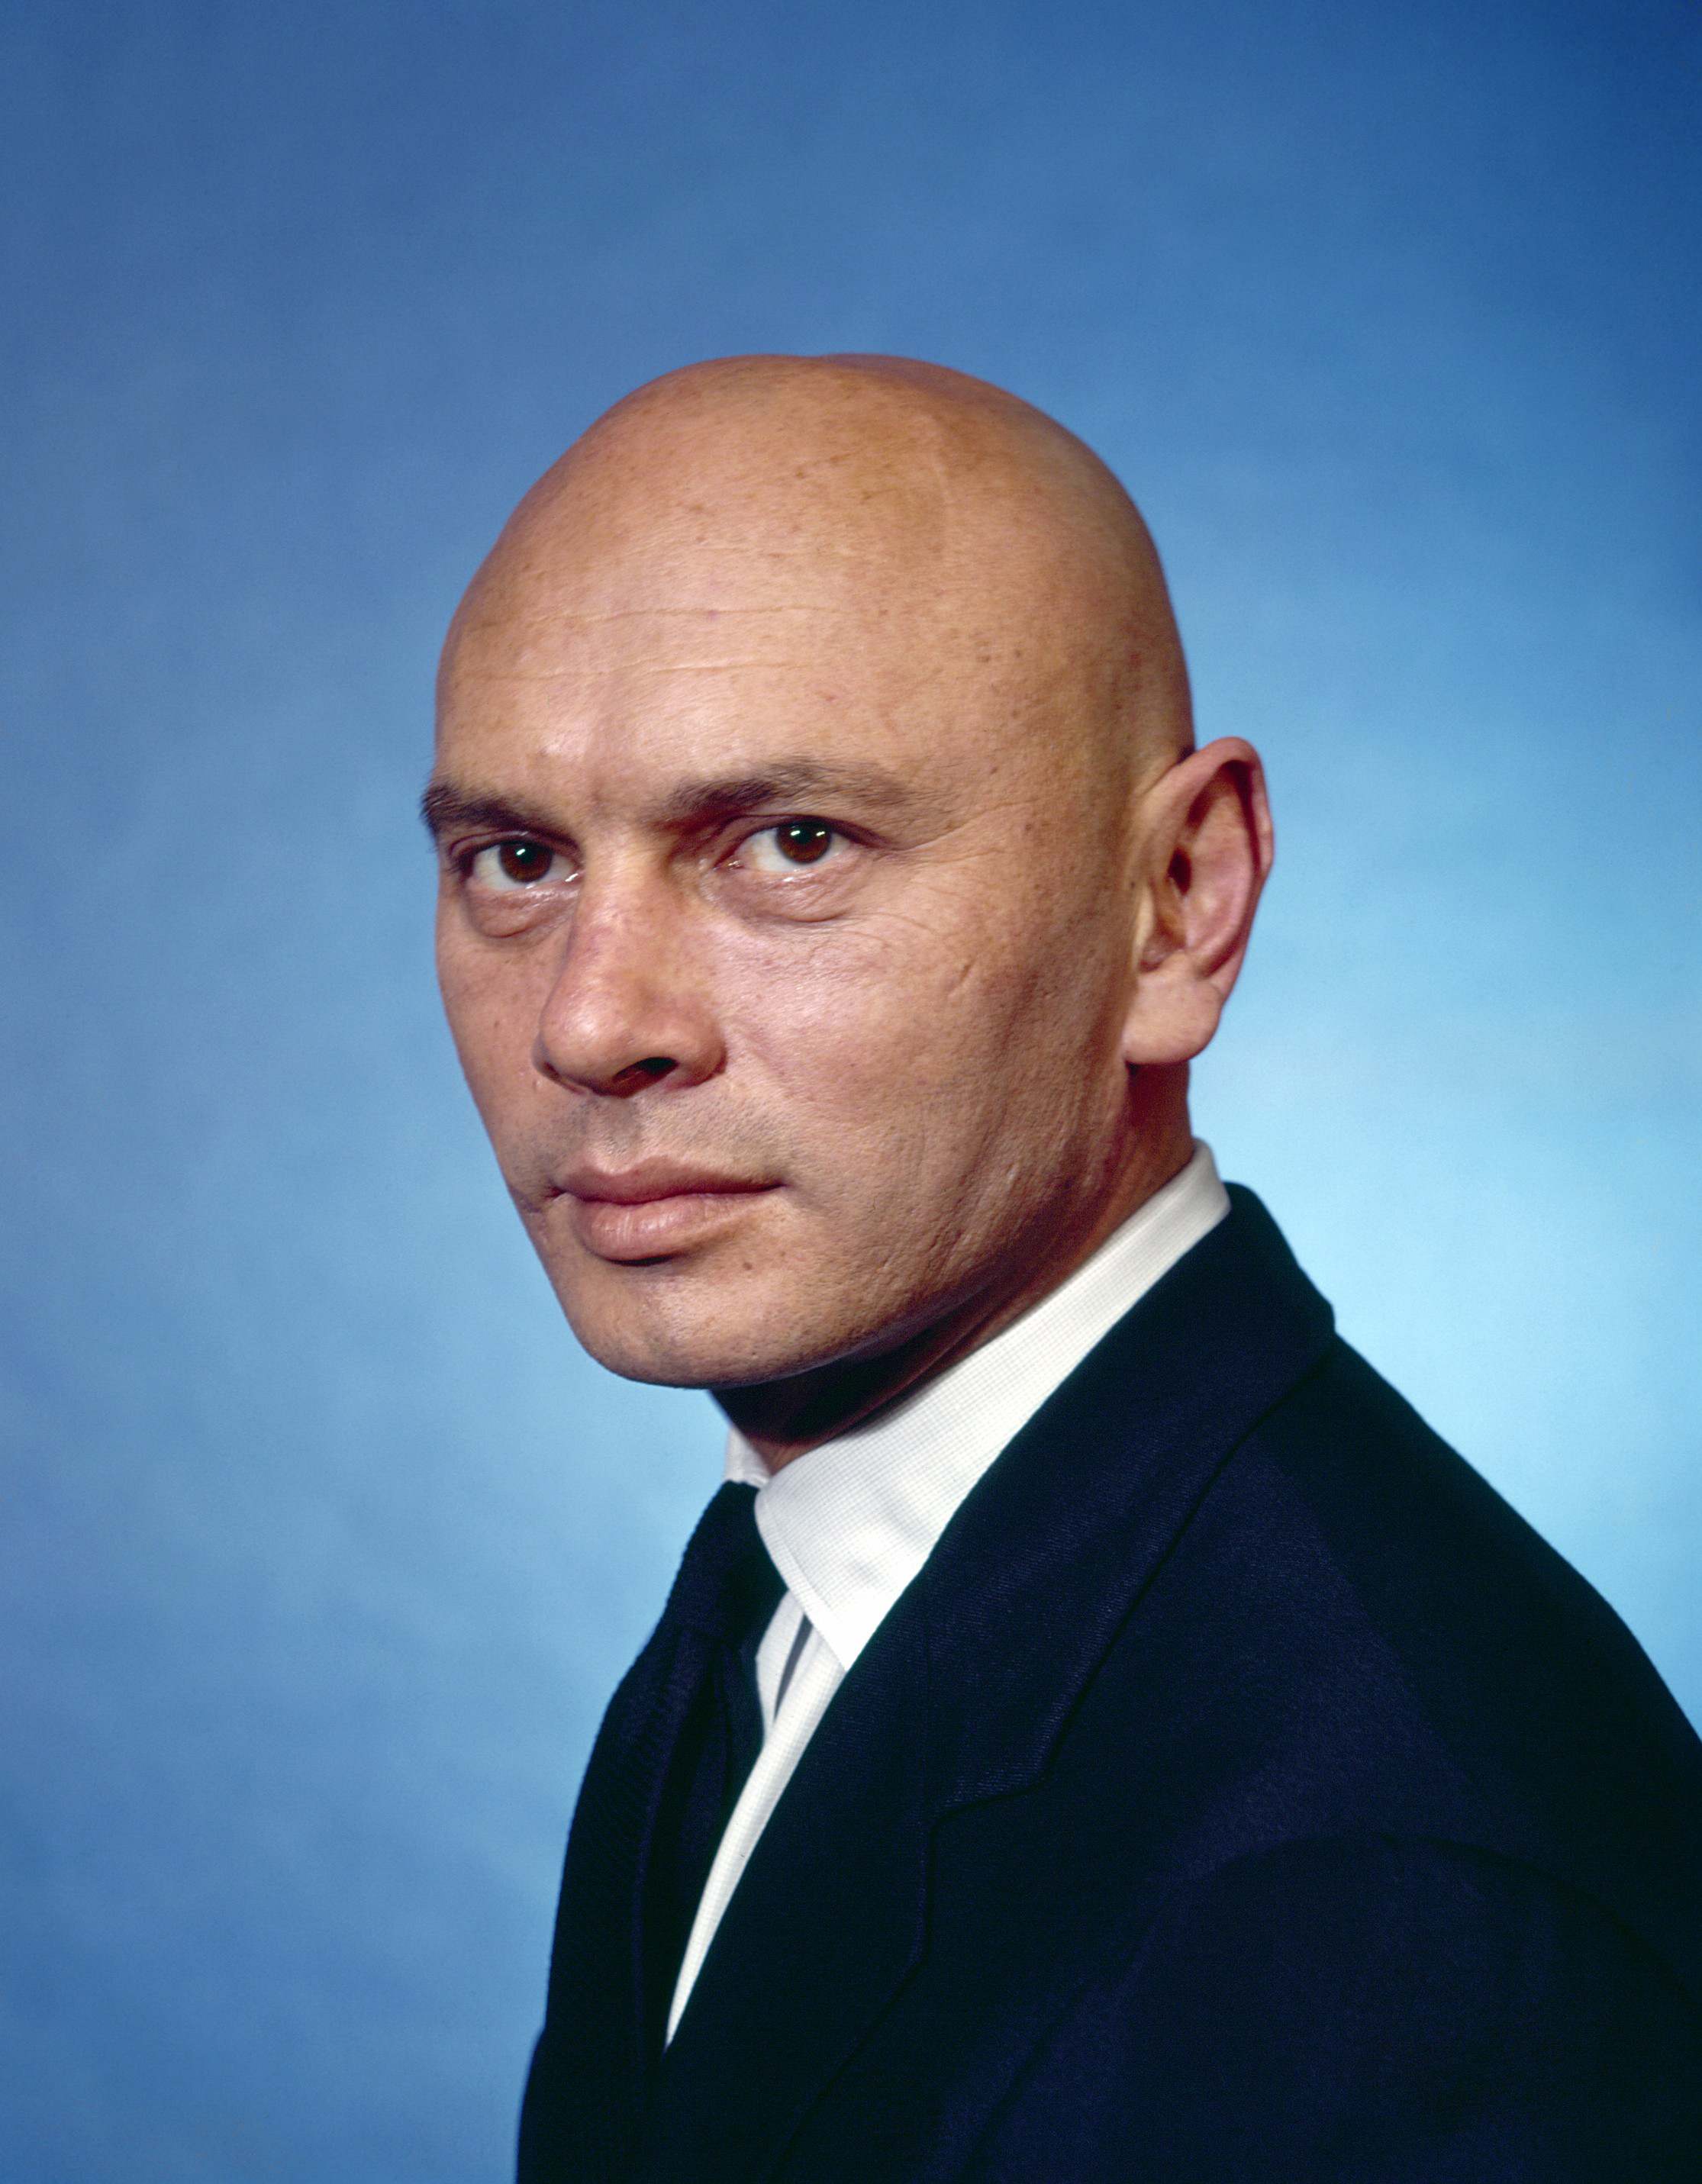 yul brynner biographyyul brynner wiki, yul brynner biography, yul brynner smoking, yul brynner biographie, yul brynner russian, yul brynner death, yul brynner photography, yul brynner king, yul brynner smoke, yul brynner gypsy, yul brynner nationality, yul brynner was a skinhead, yul brynner westworld, yul brynner magnificent seven, yul brynner photographer, yul brynner speaking russian, yul brynner smoking commercial, yul brynner the man who would be king, yul brynner oscar, yul brynner getty images